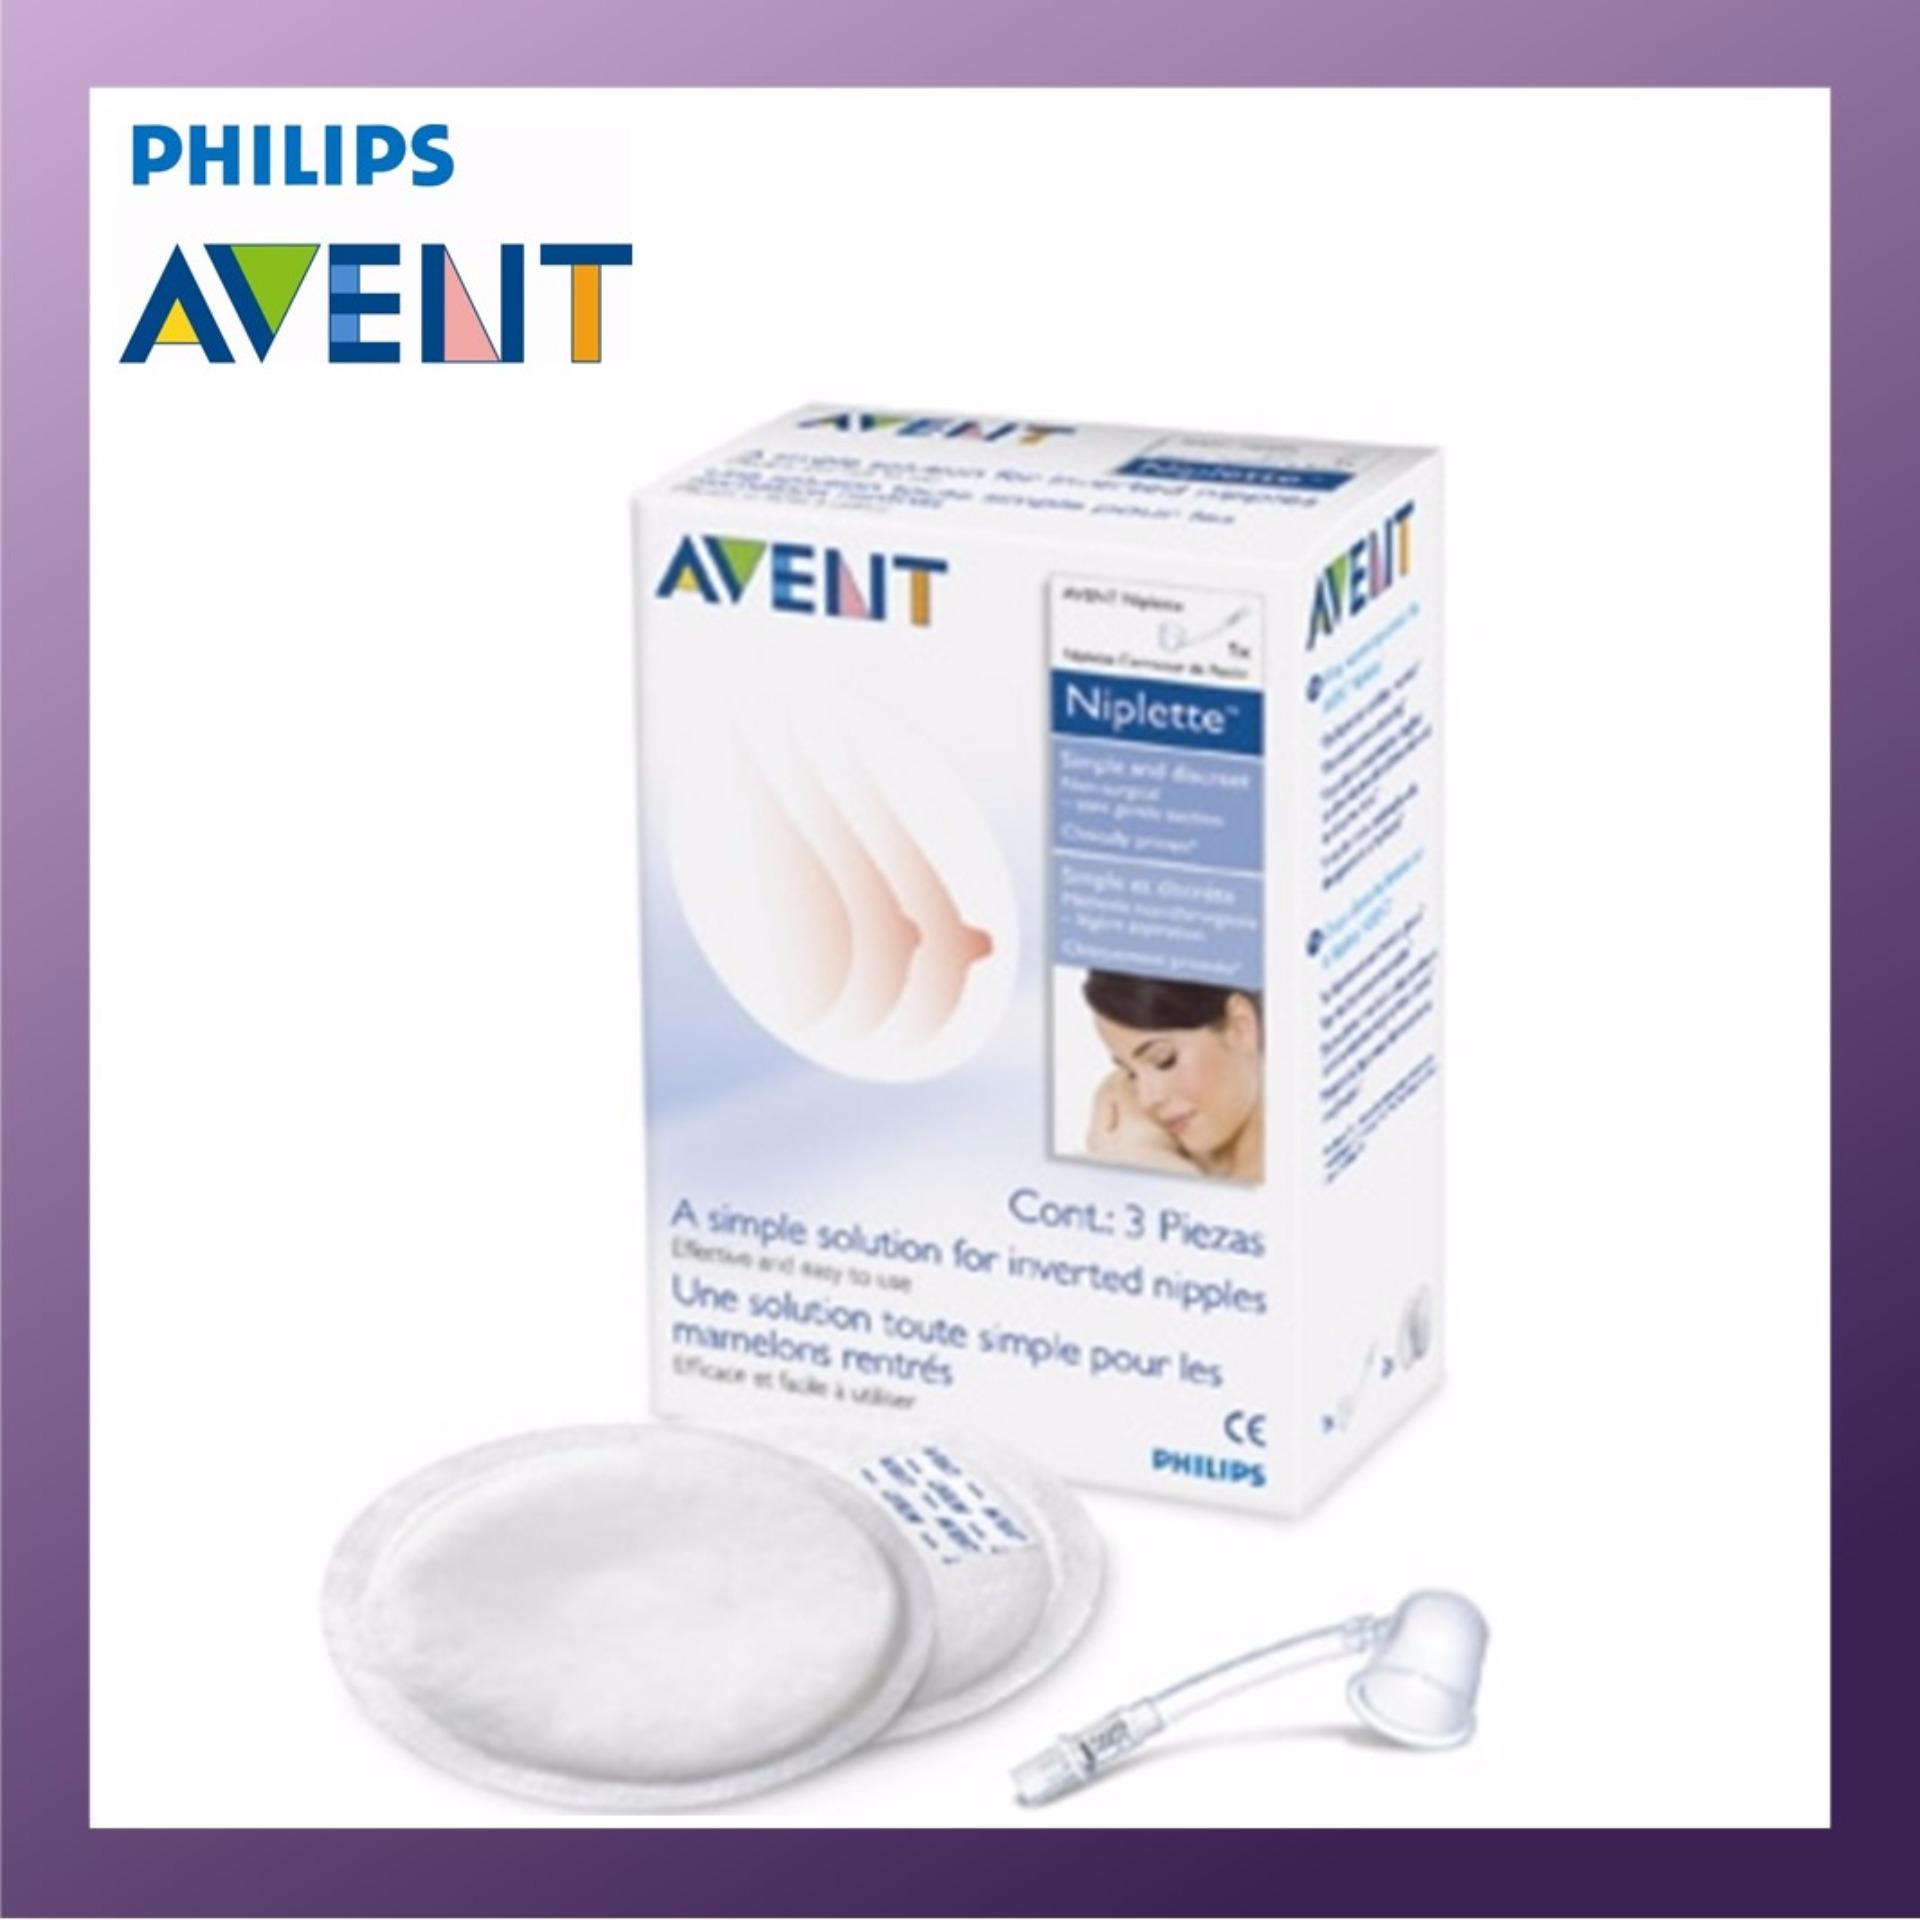 Where To Shop For Philips Avent Niplette